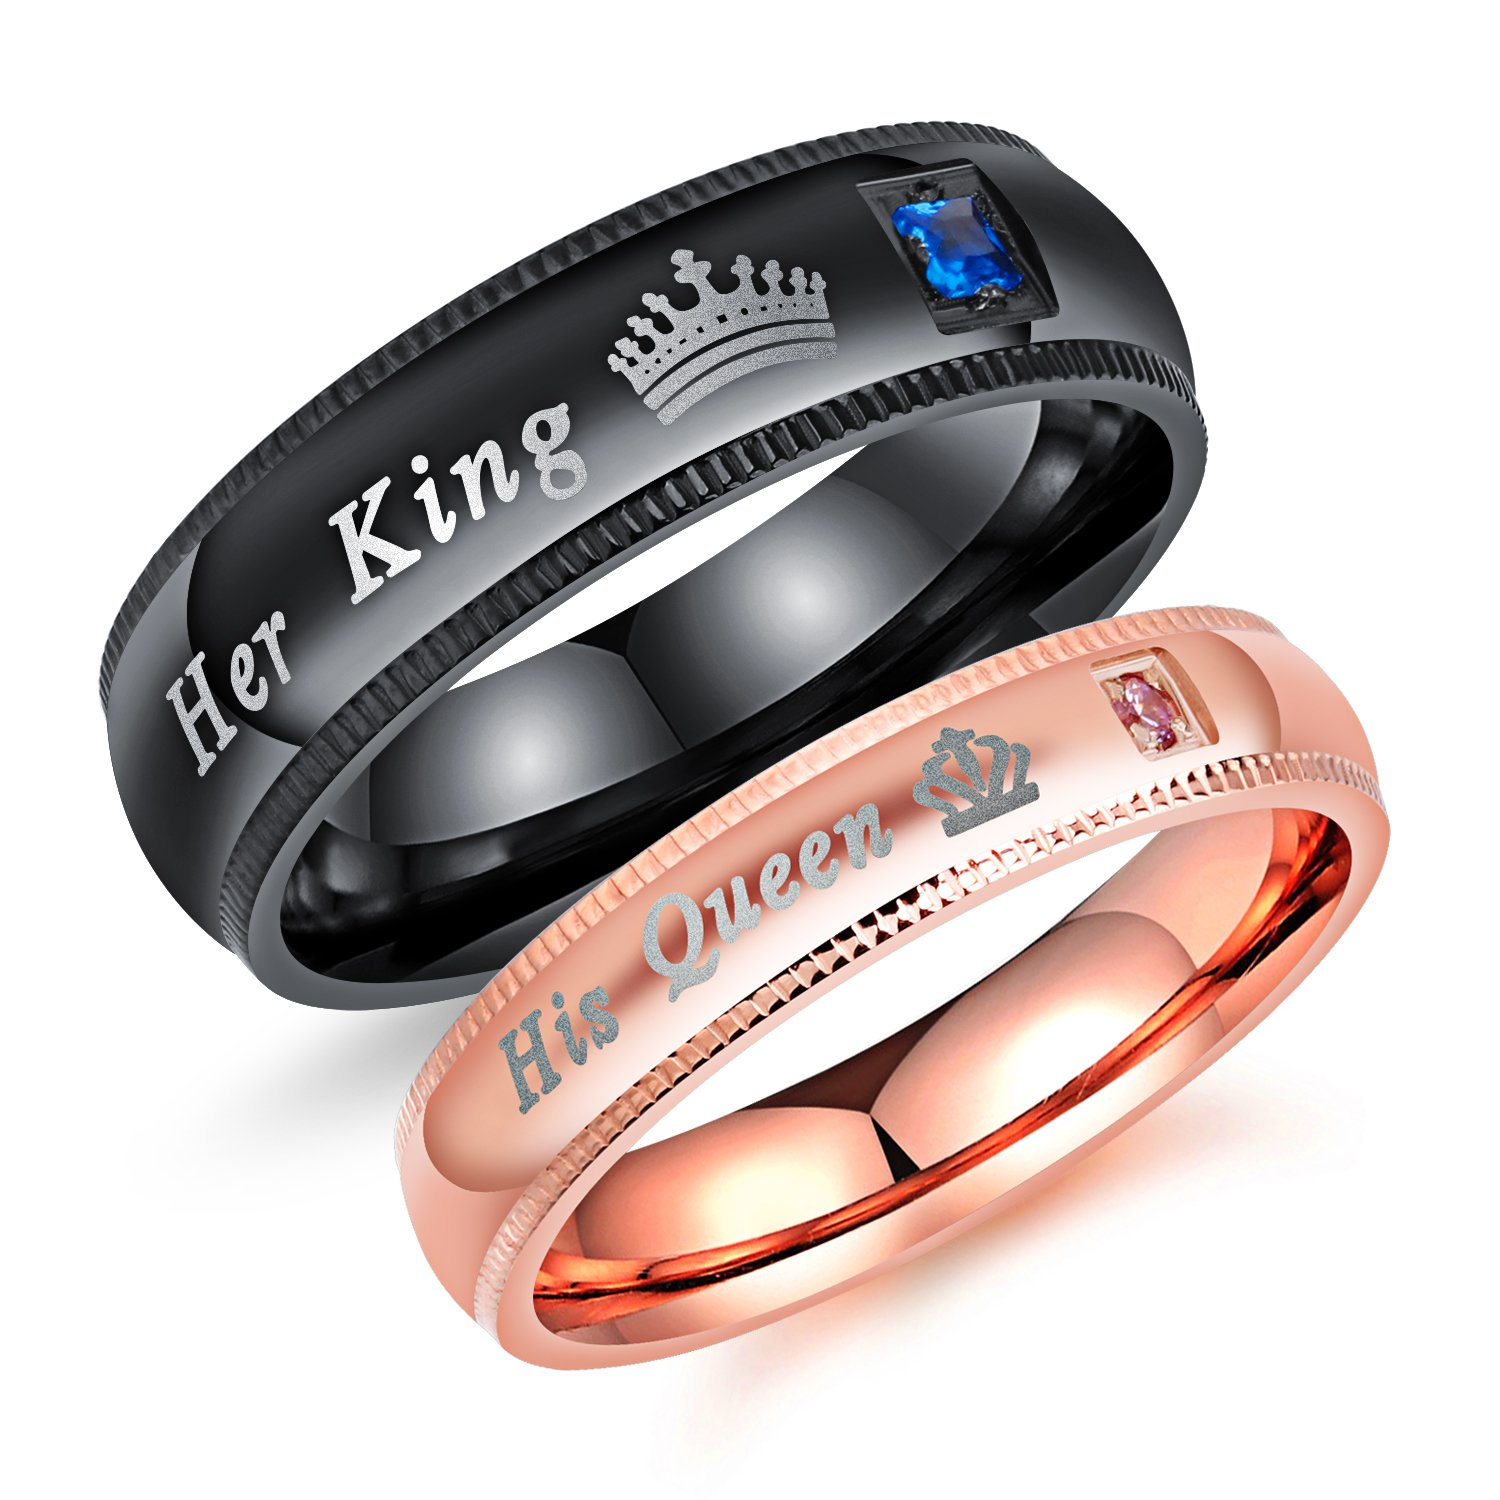 Fate Love Jewelry 2Pcs Matching set Stainless His Queen & Her King Black/Rose Gold Couple Rings Bands, Love Gift